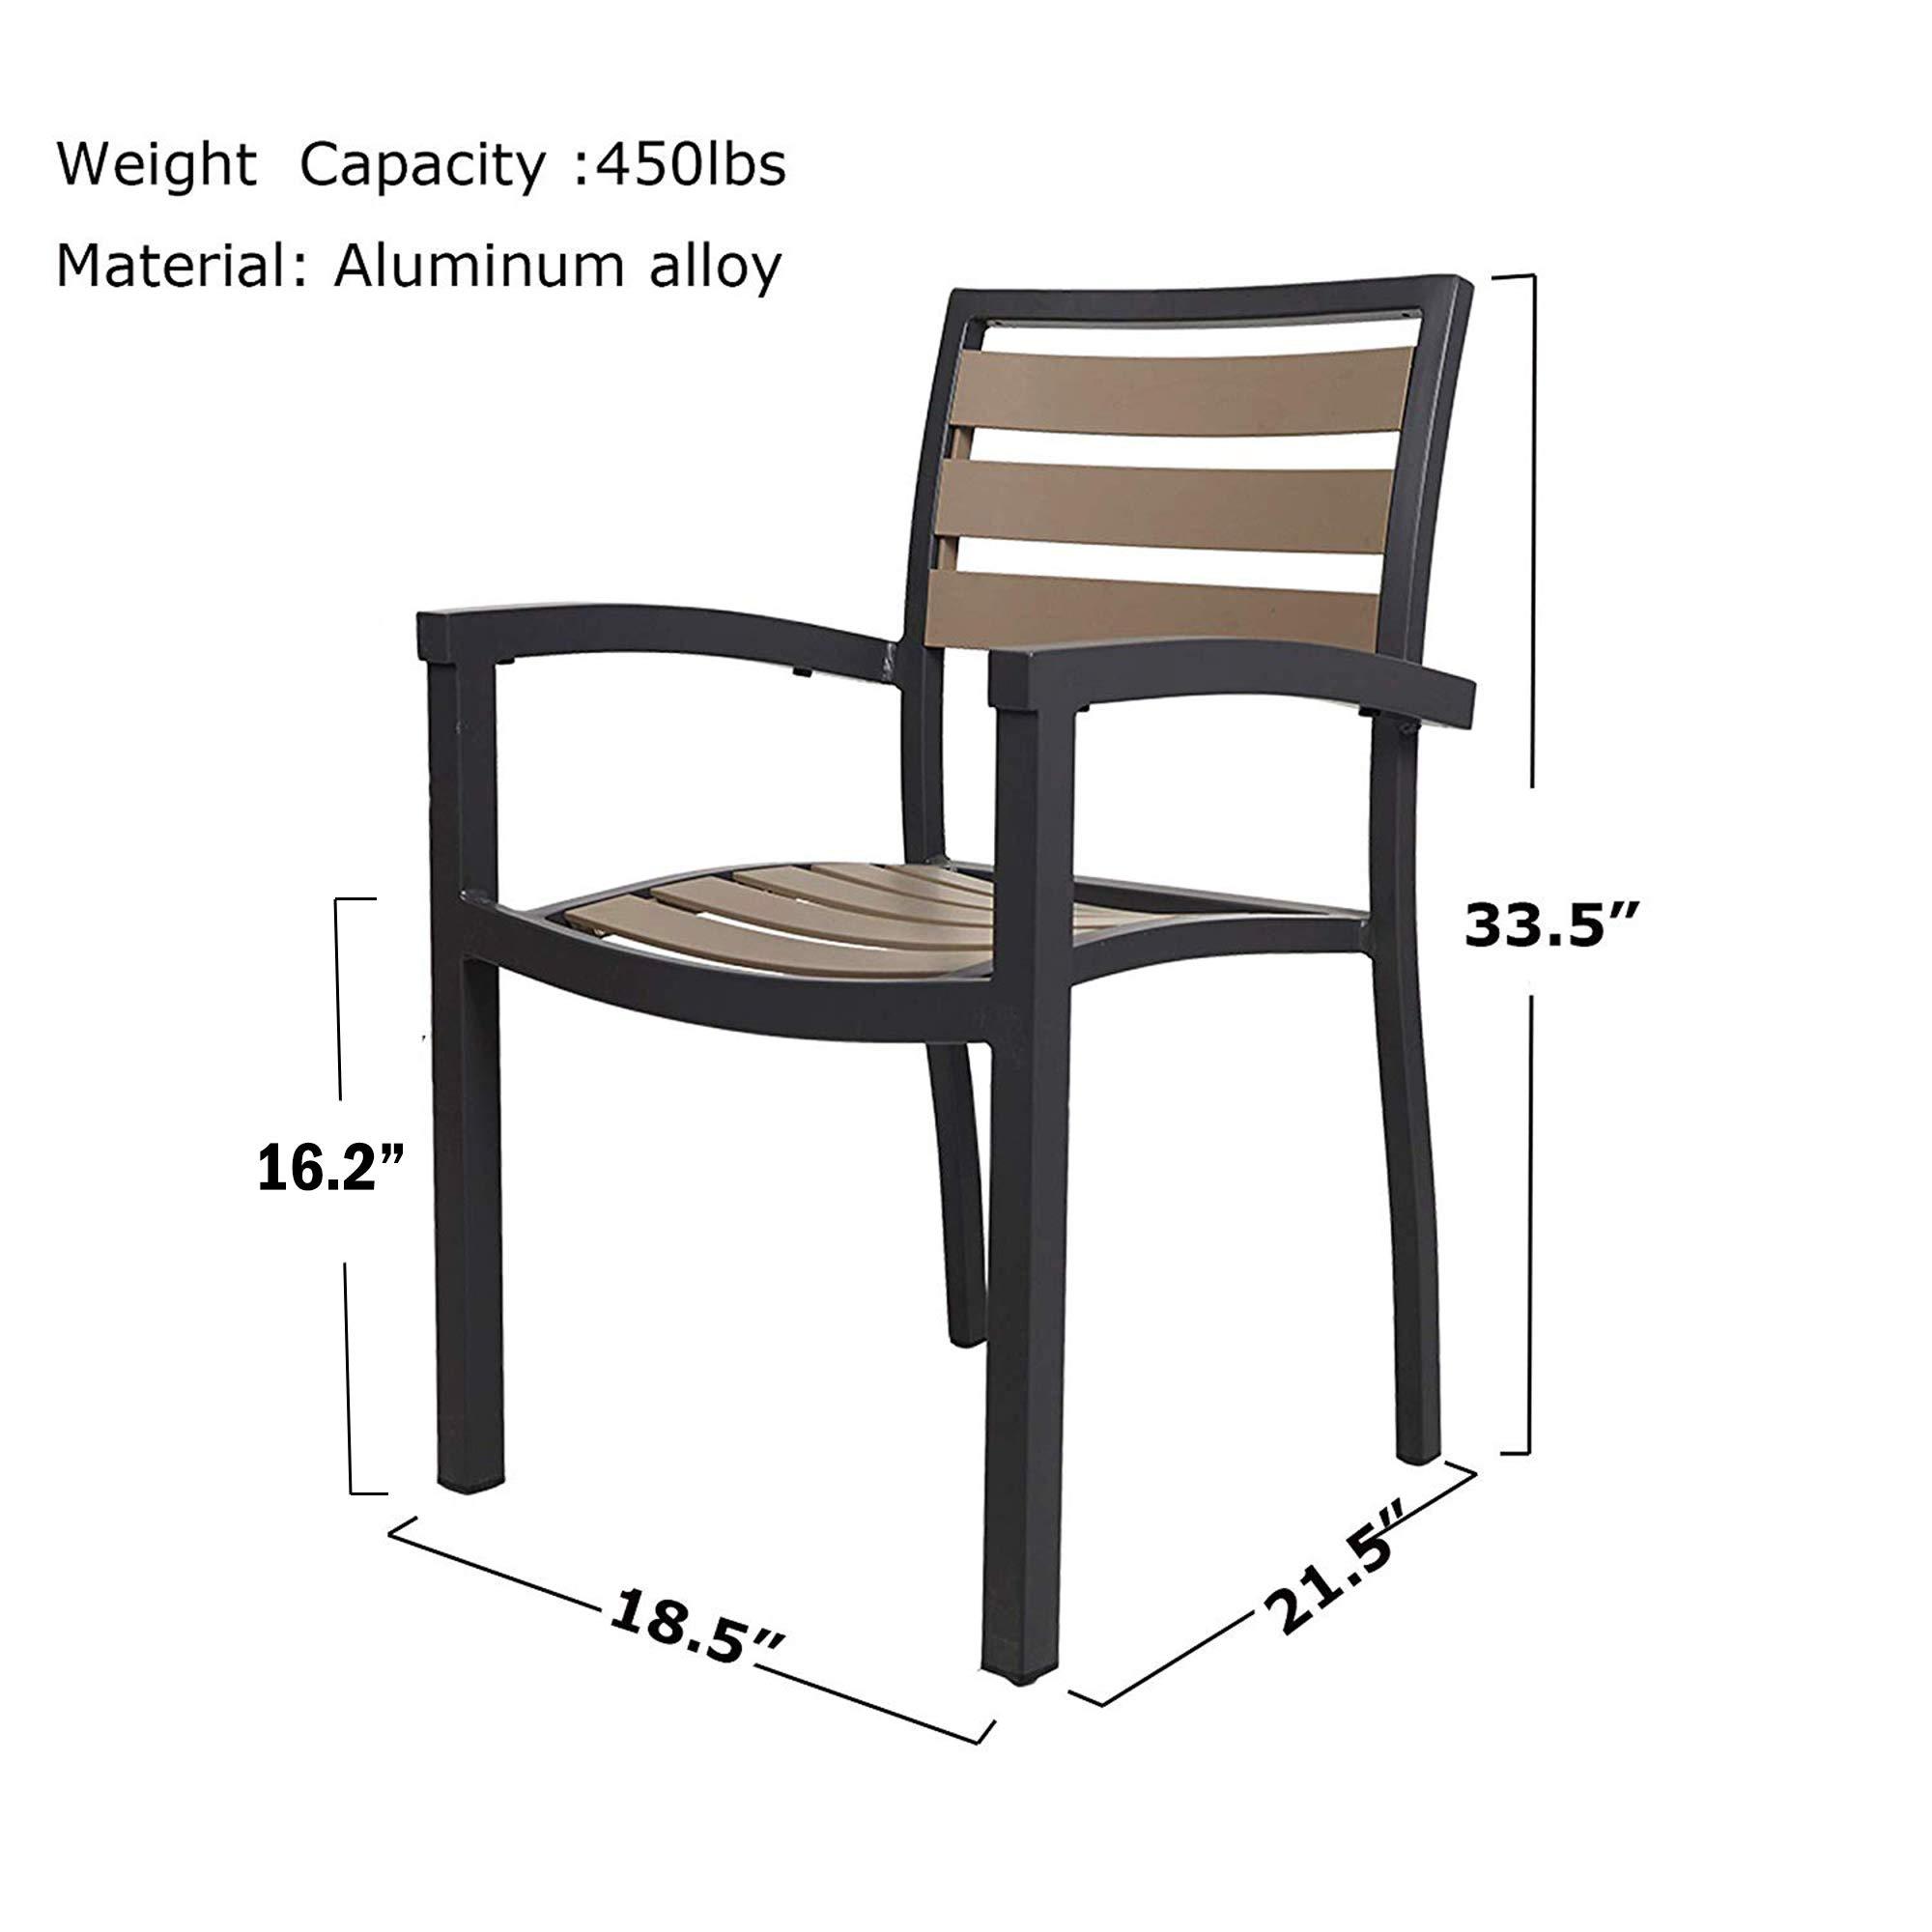 LUCKYERMORE 10PK Patio Chairs Outdoor Dining Chair Stackable Armchair  Aluminum Alloy Lightweight & Heavy Duty for Commercial Restaurant Use